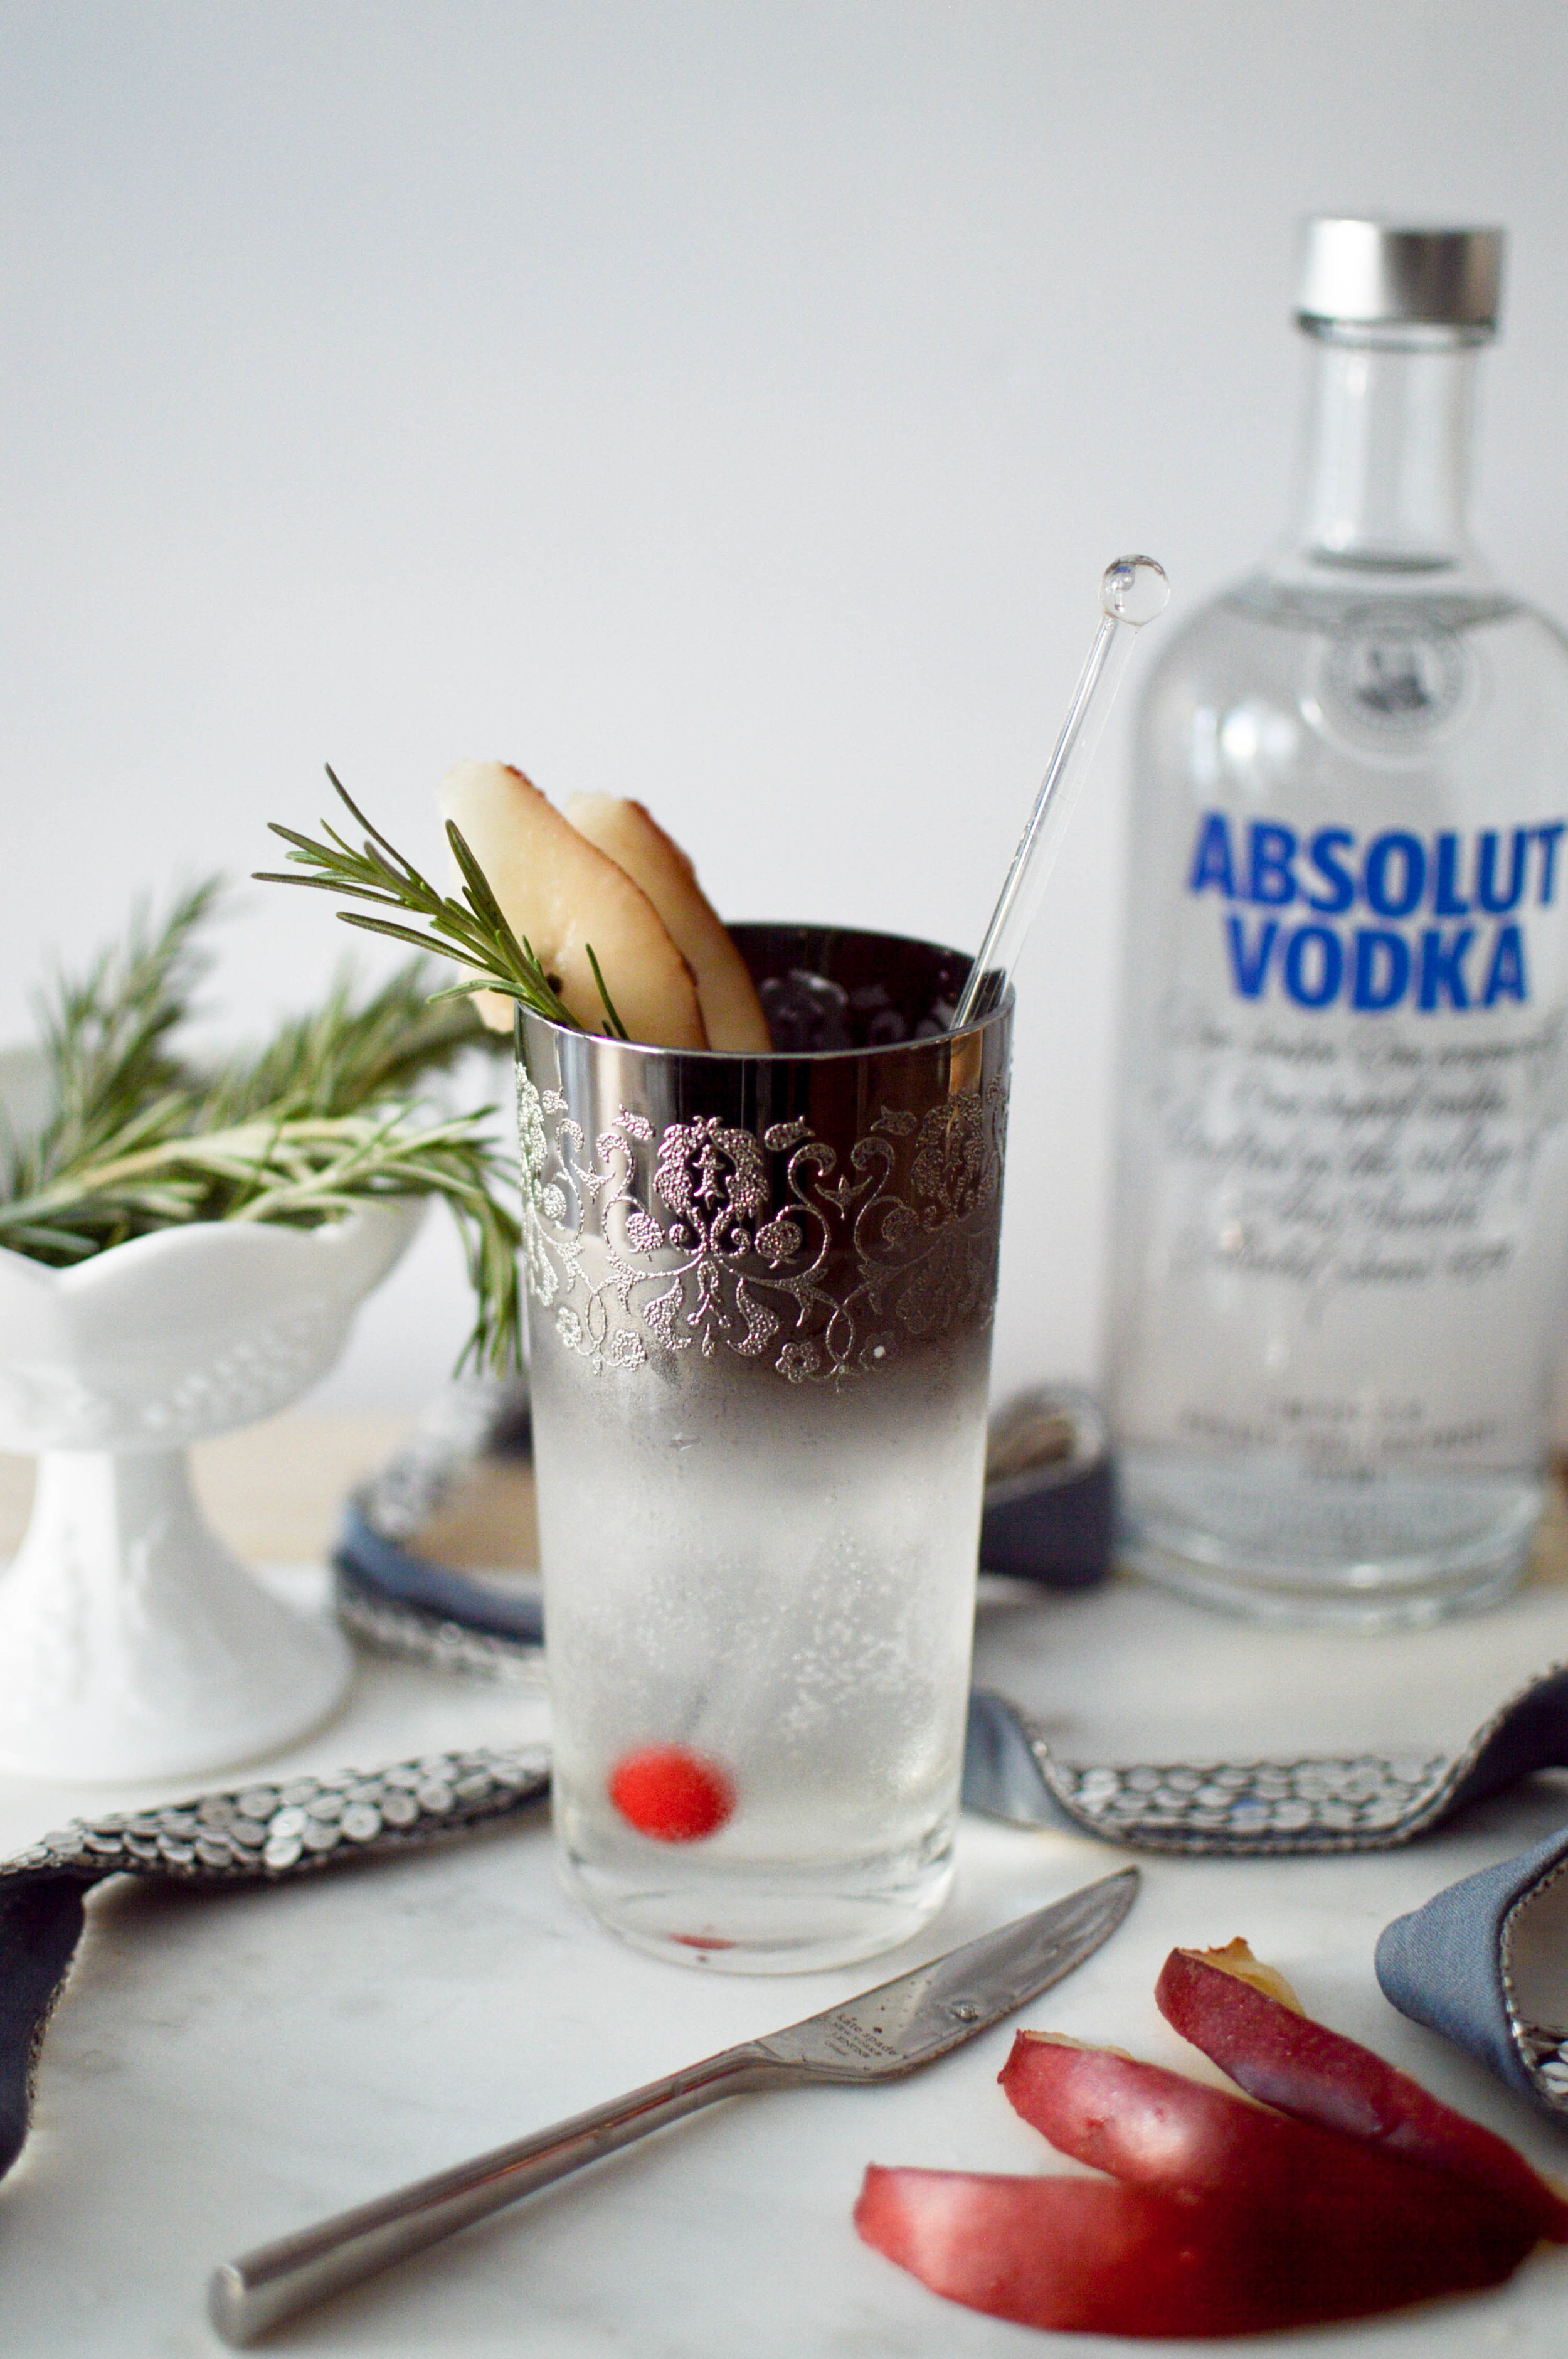 Sparkling Rosemary-Pear Cocktail with Absolut Vodka via. www.birdieshoots.com